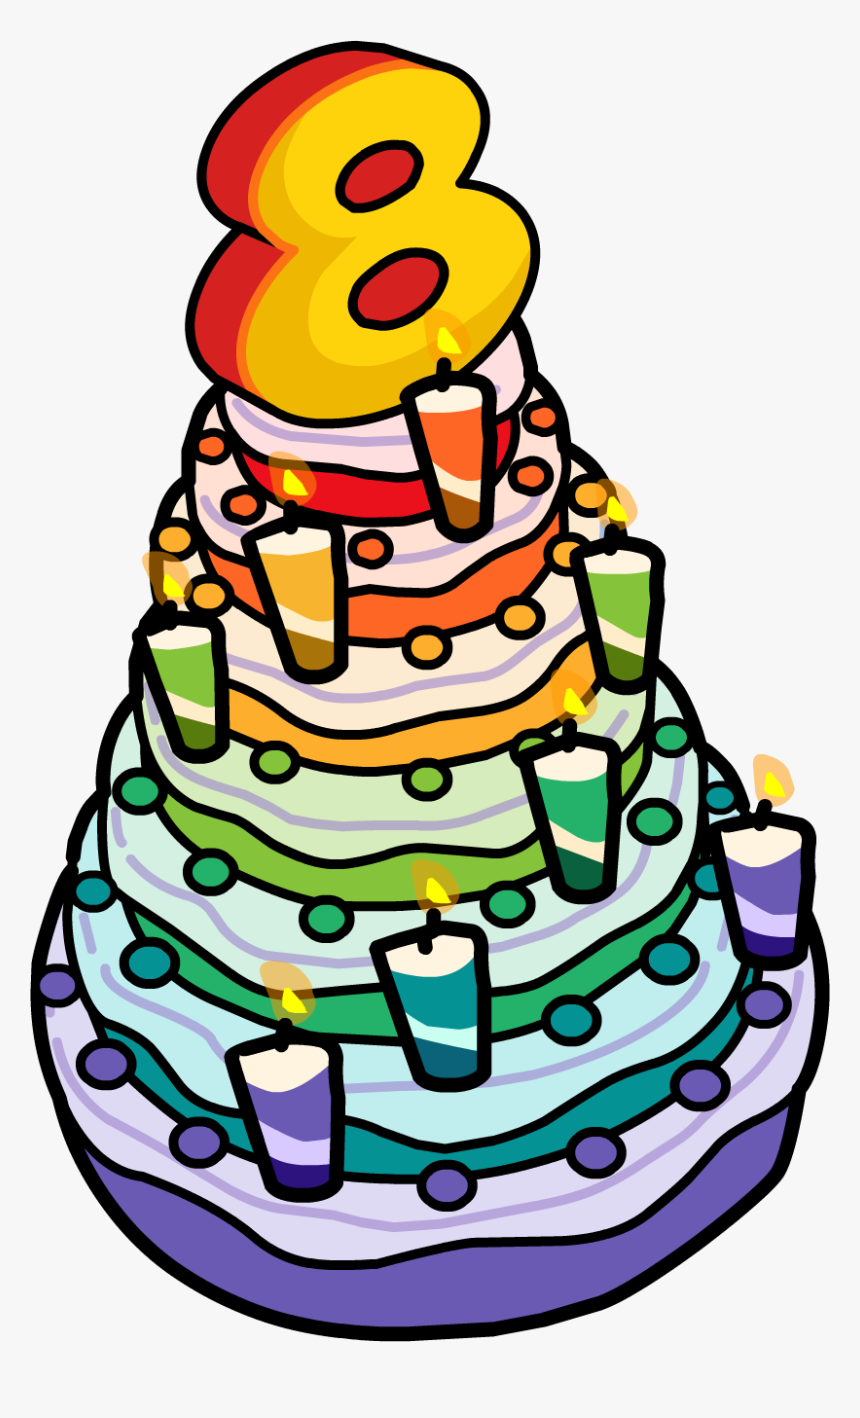 Swell 8Th Anniversary Party Cake 8Th Birthday Cake Clipart Hd Png Funny Birthday Cards Online Inifodamsfinfo